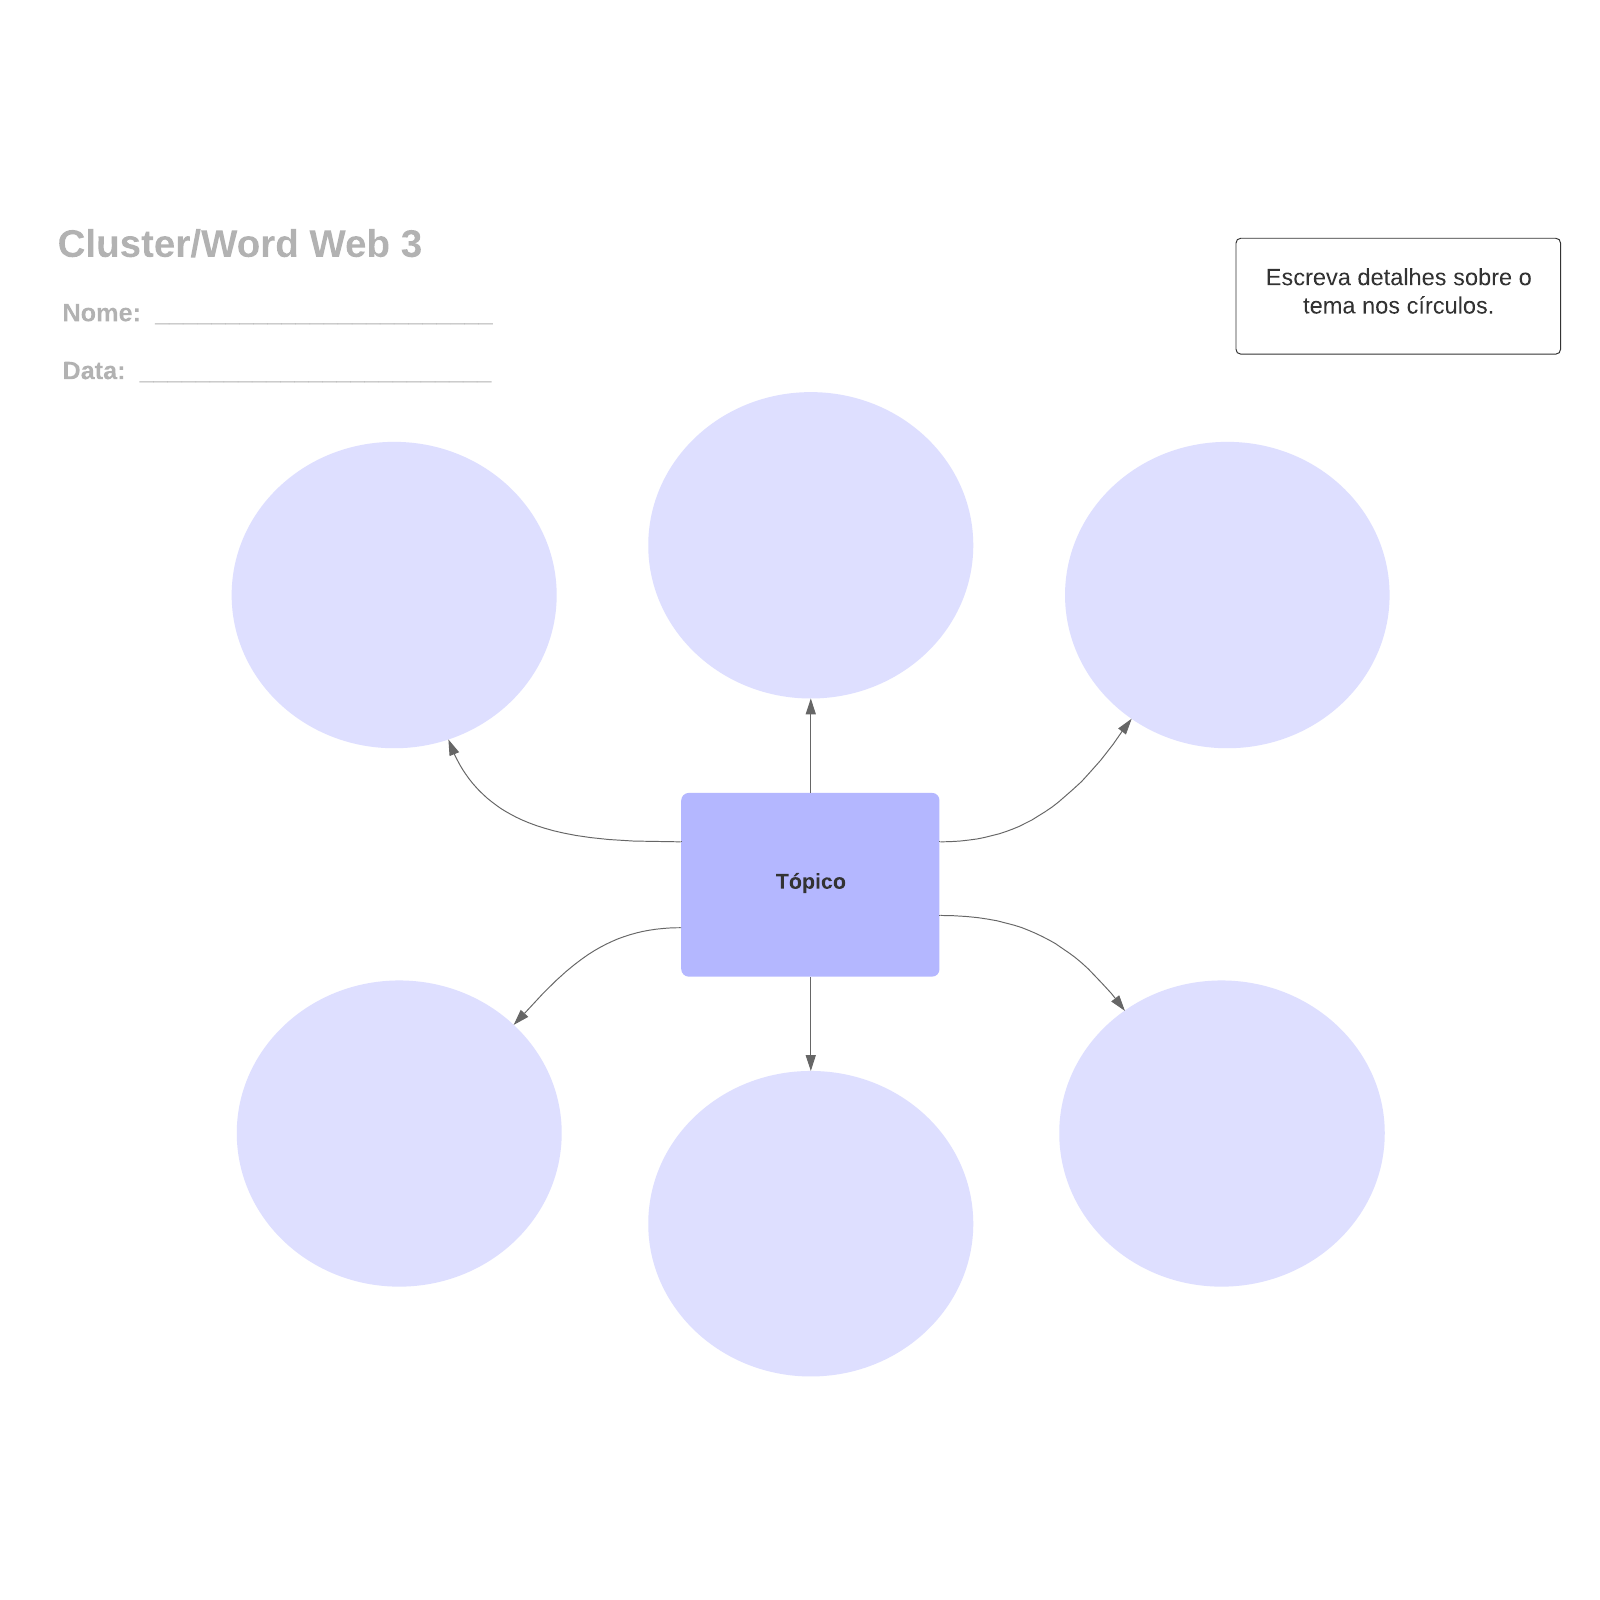 Cluster/Word Web 3